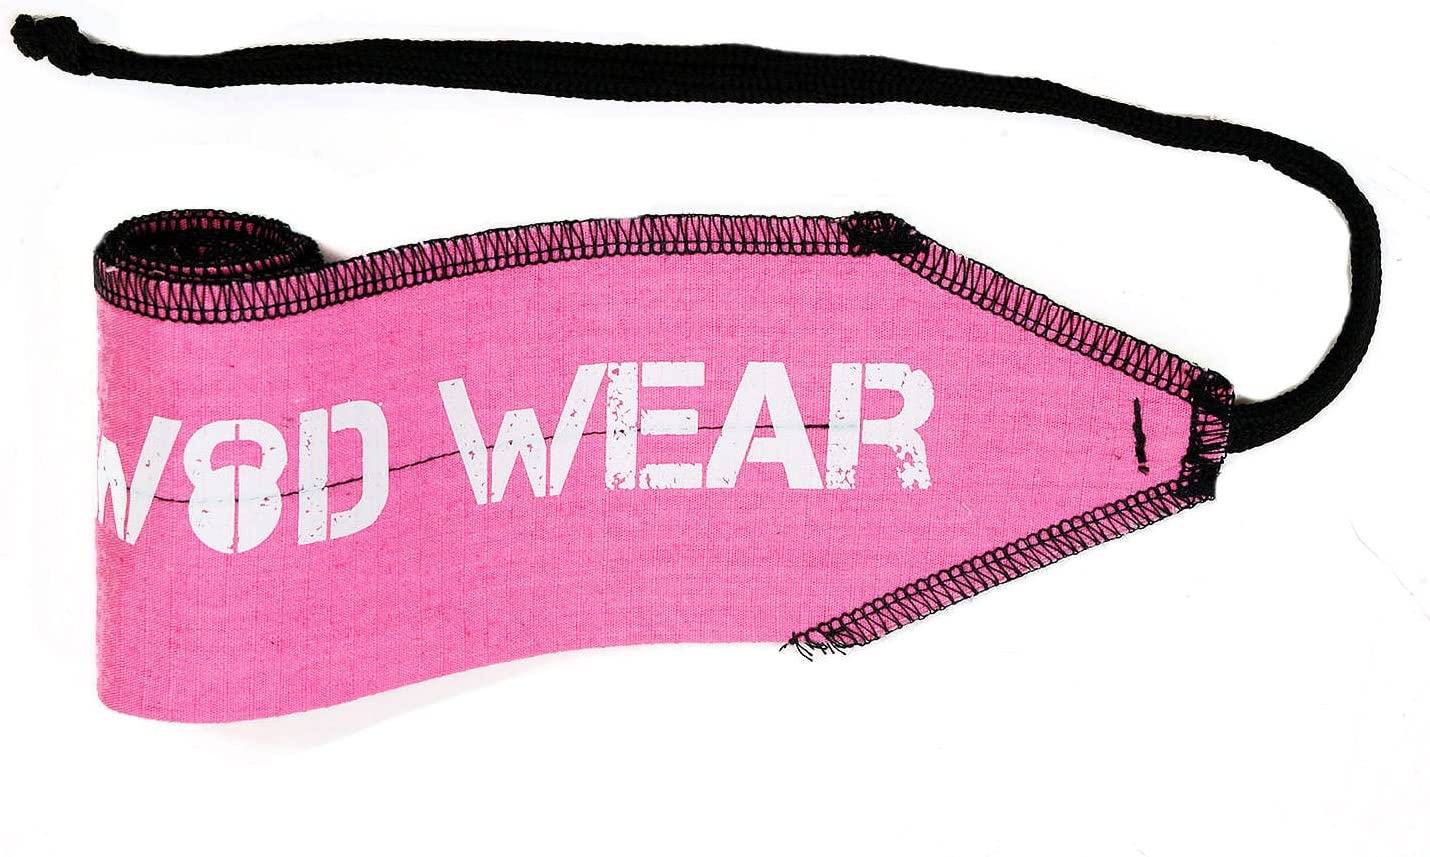 Yoga Wrist Supports for Weight Training Bodybuilding WOD Wear Wrist Wraps Strength Wraps for Powerlifting Olympic Weightlifting Cross Training